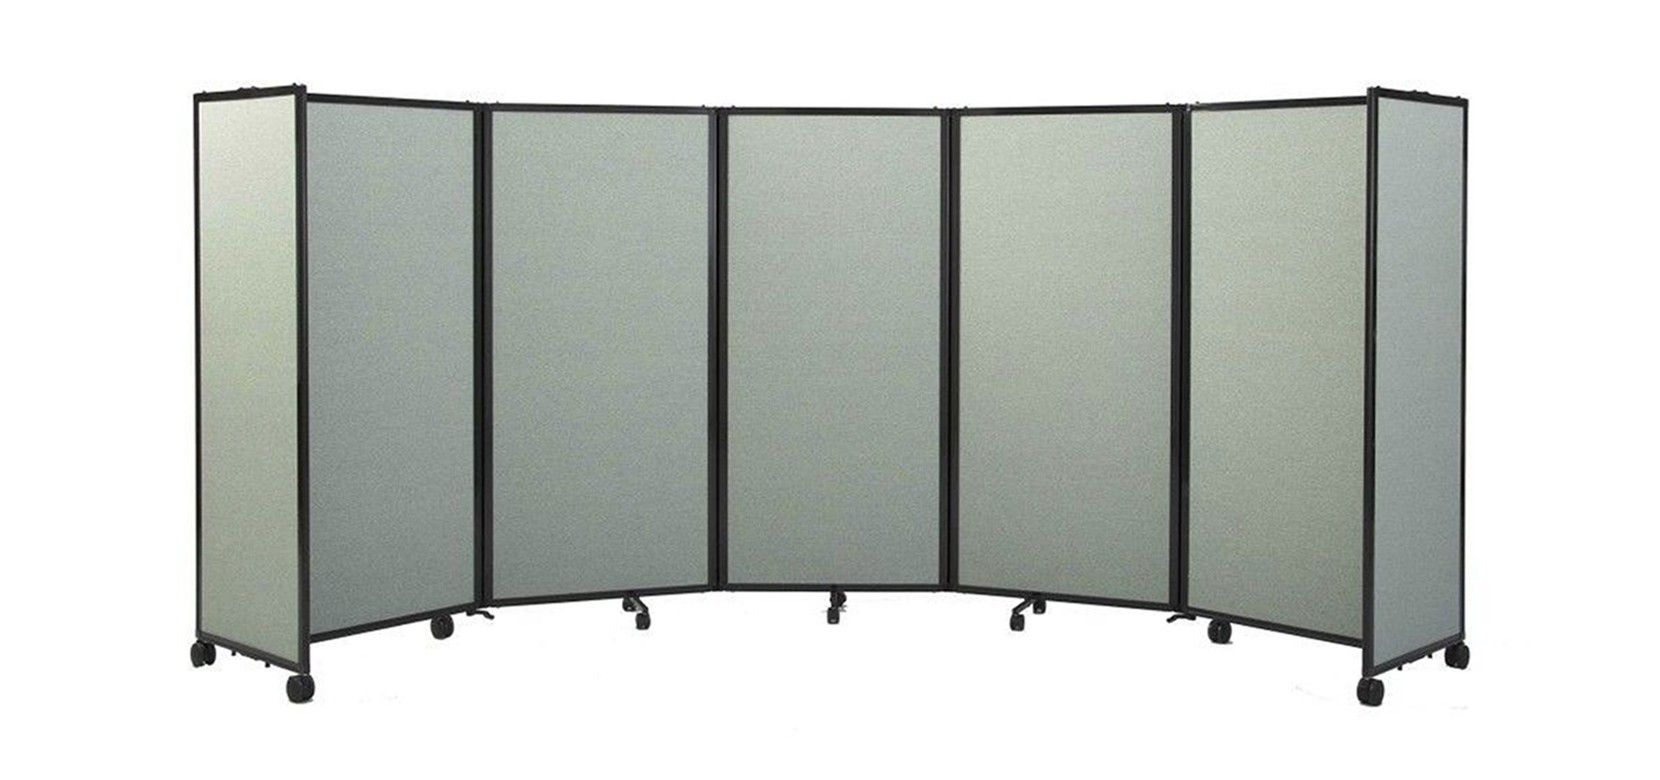 Partition Divider Room Divider 360® Accordion Portable Partition  Charts Random